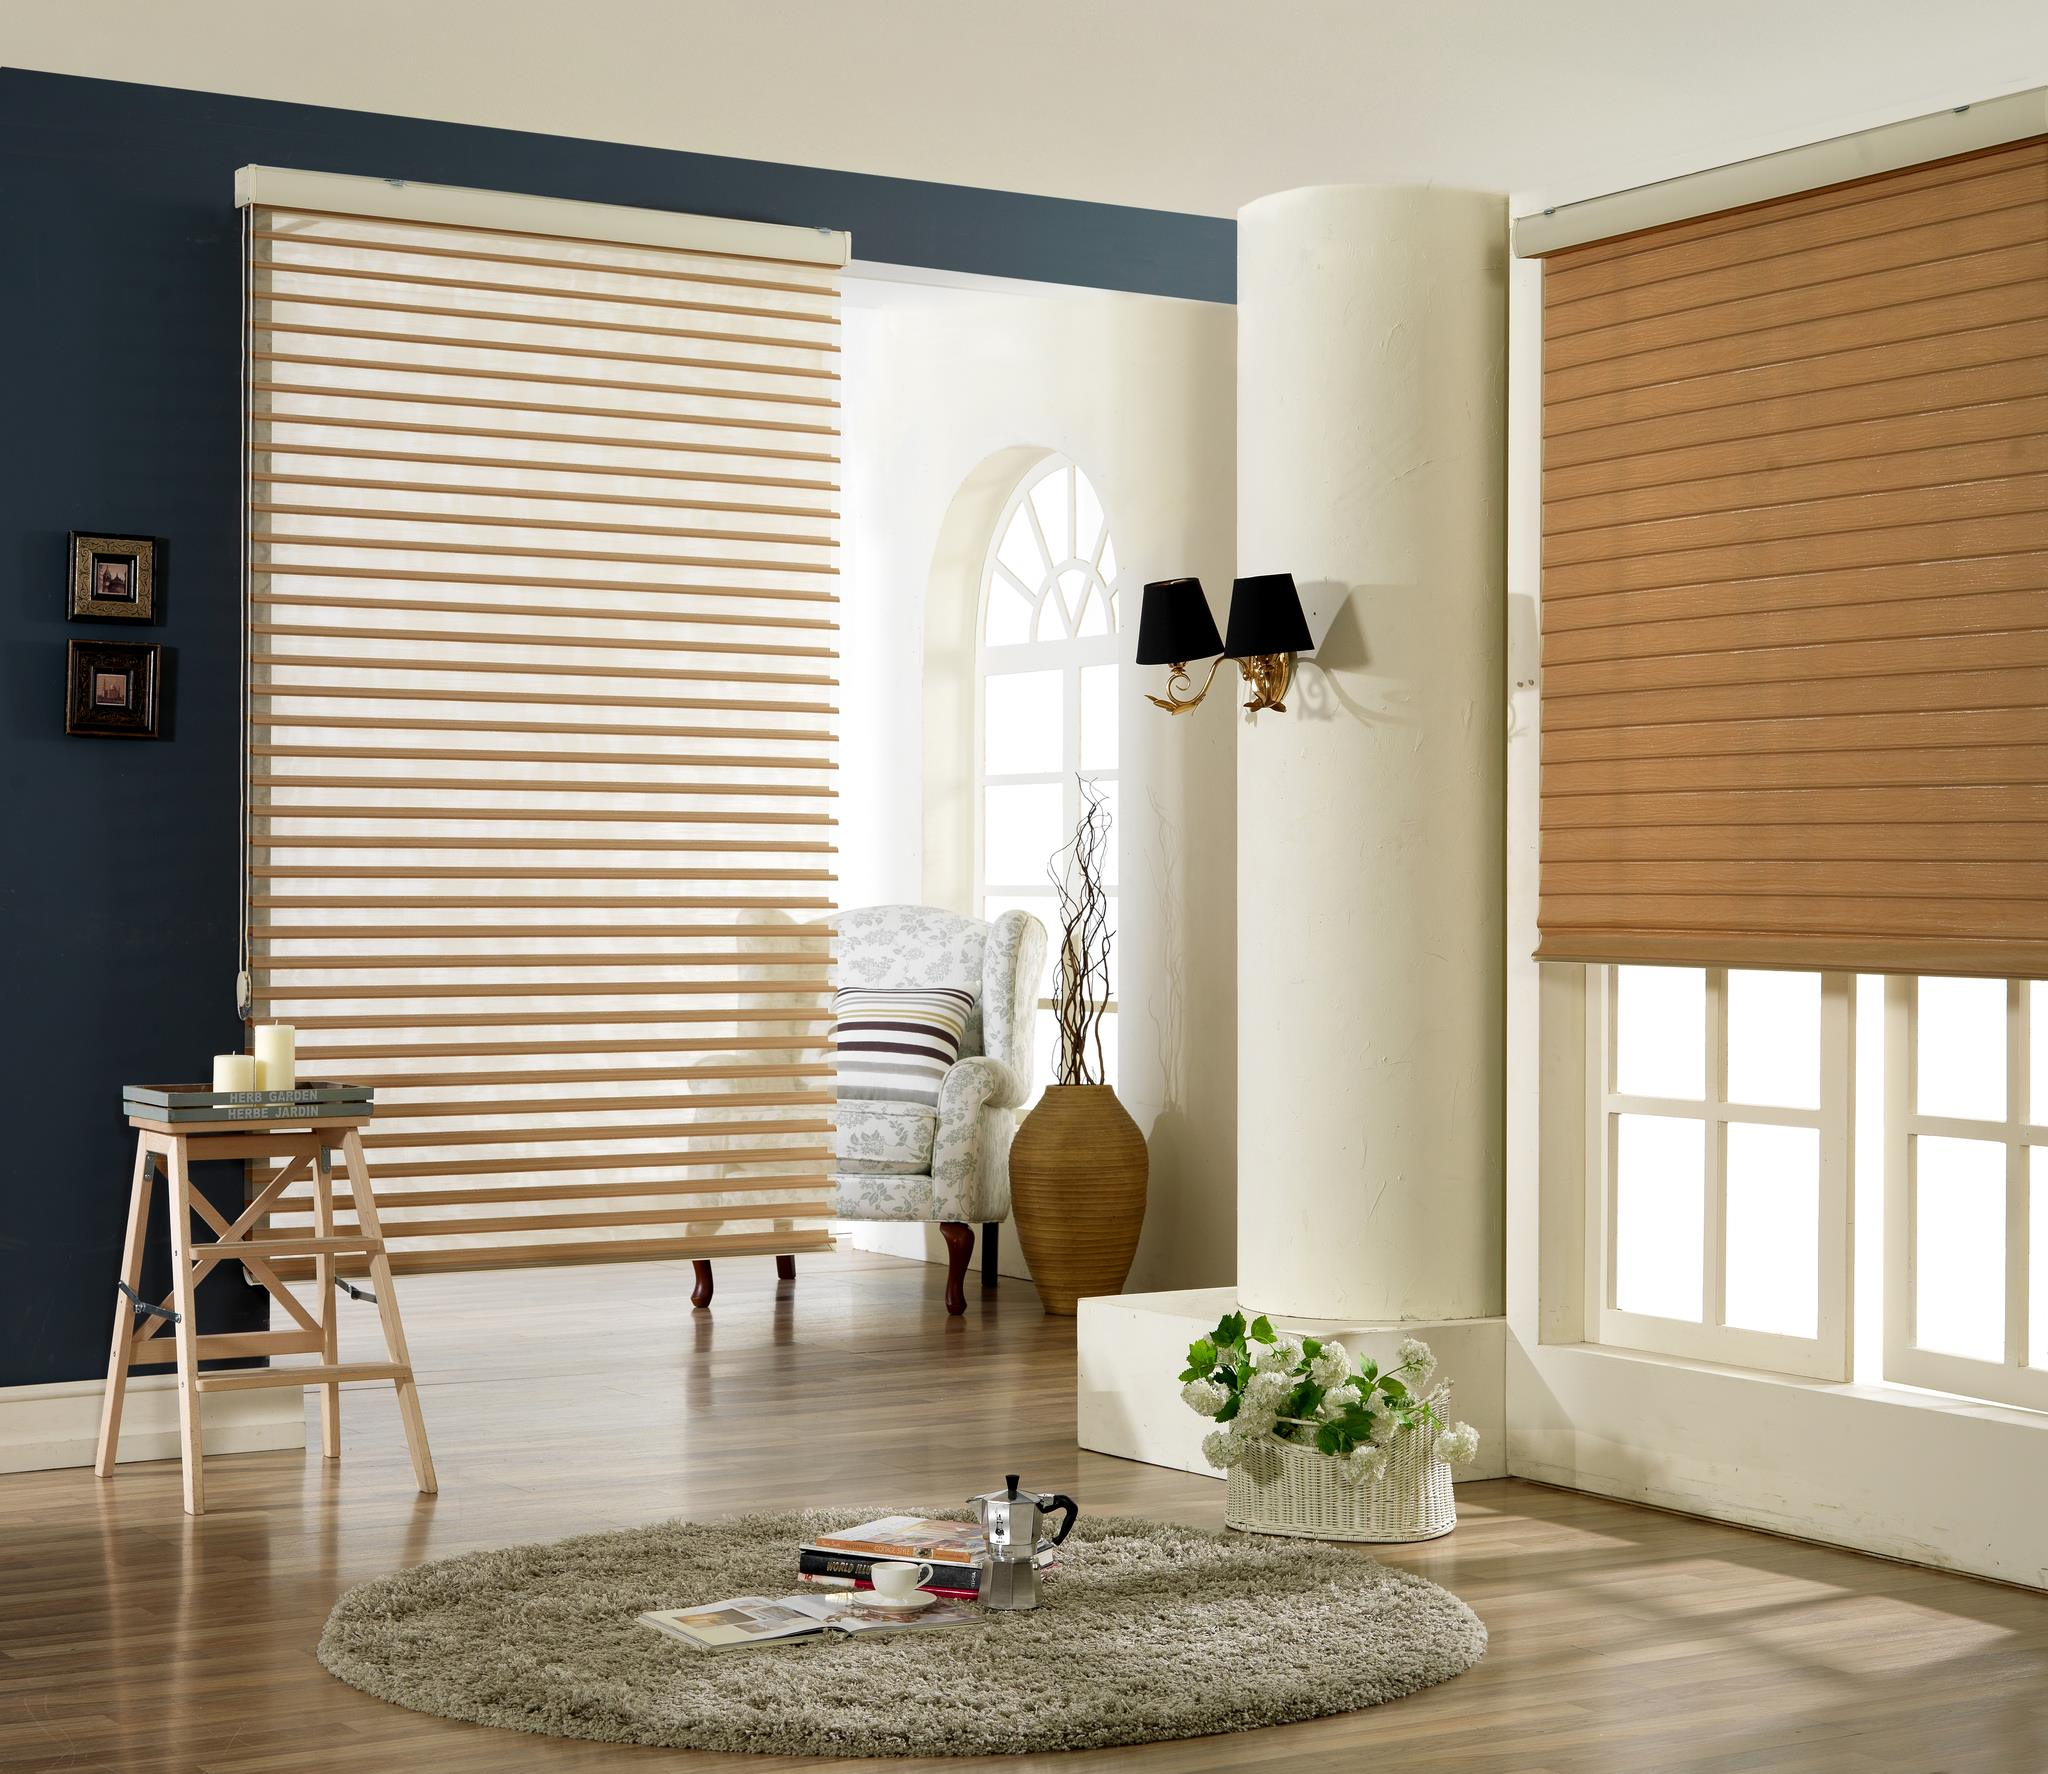 wa airy pin blinds the for pinterest basements light basement vancouver budget home suite